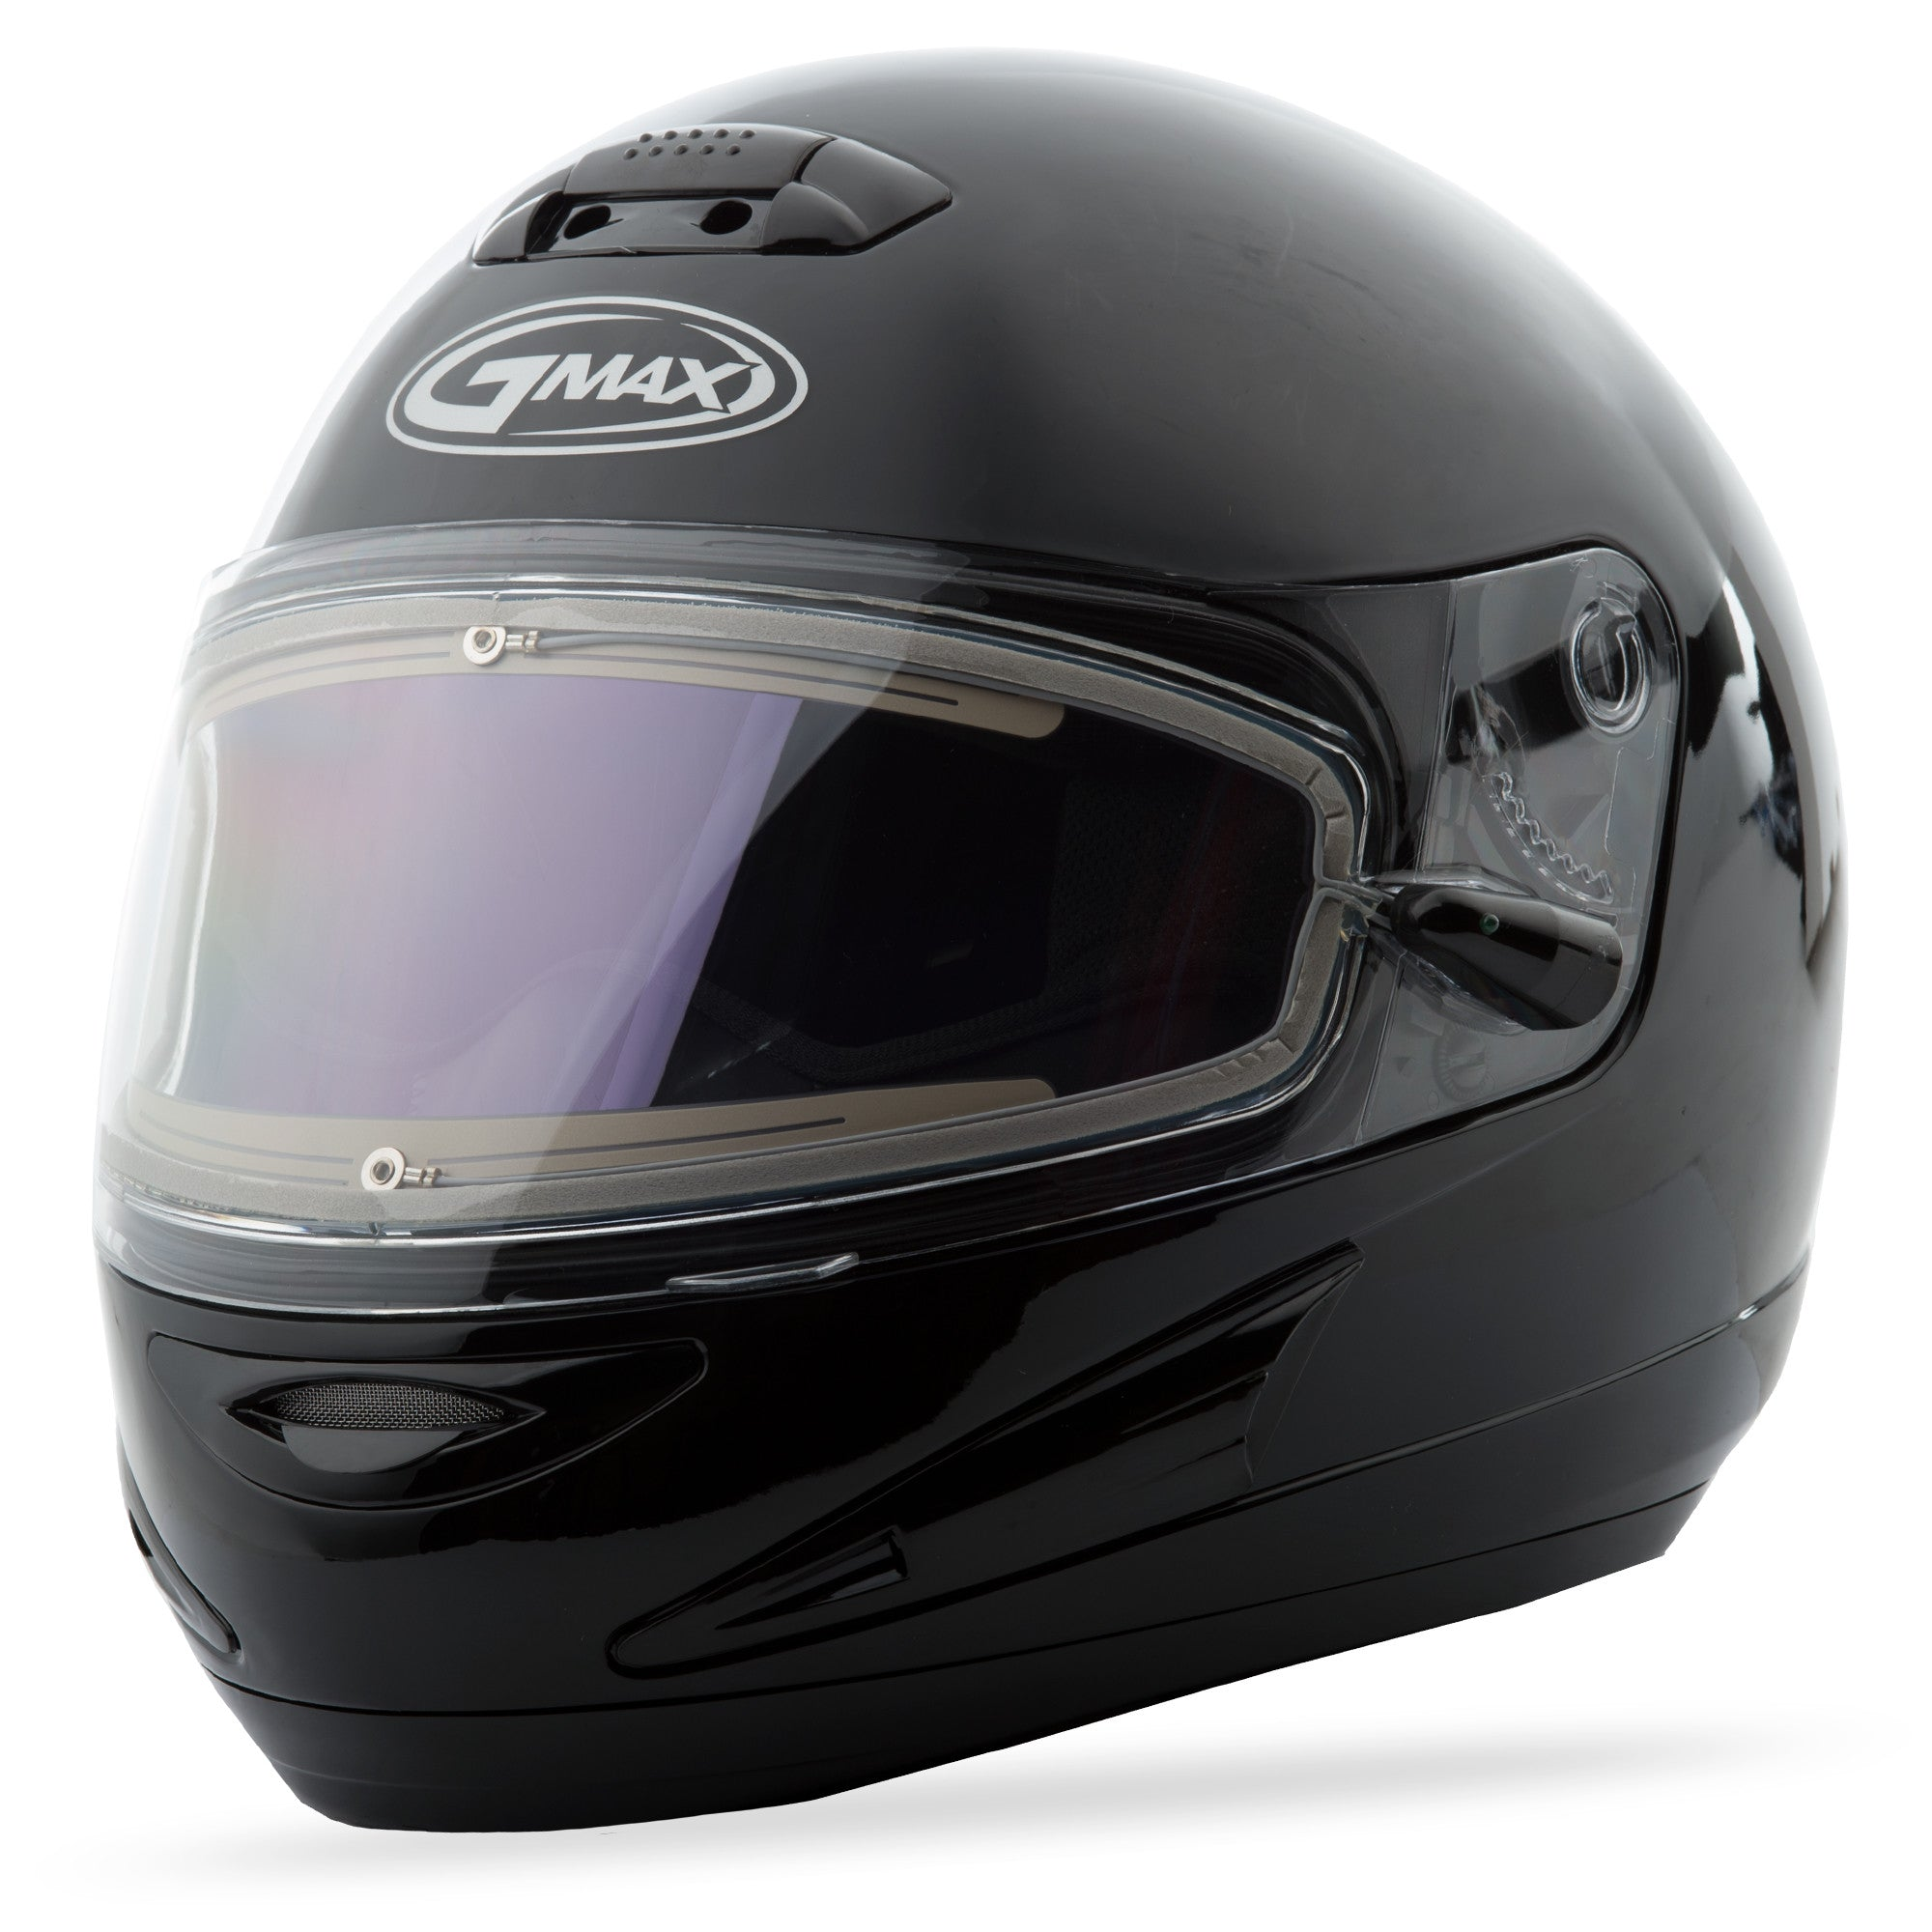 Gm38S Helmet Black W/Electric Shield L